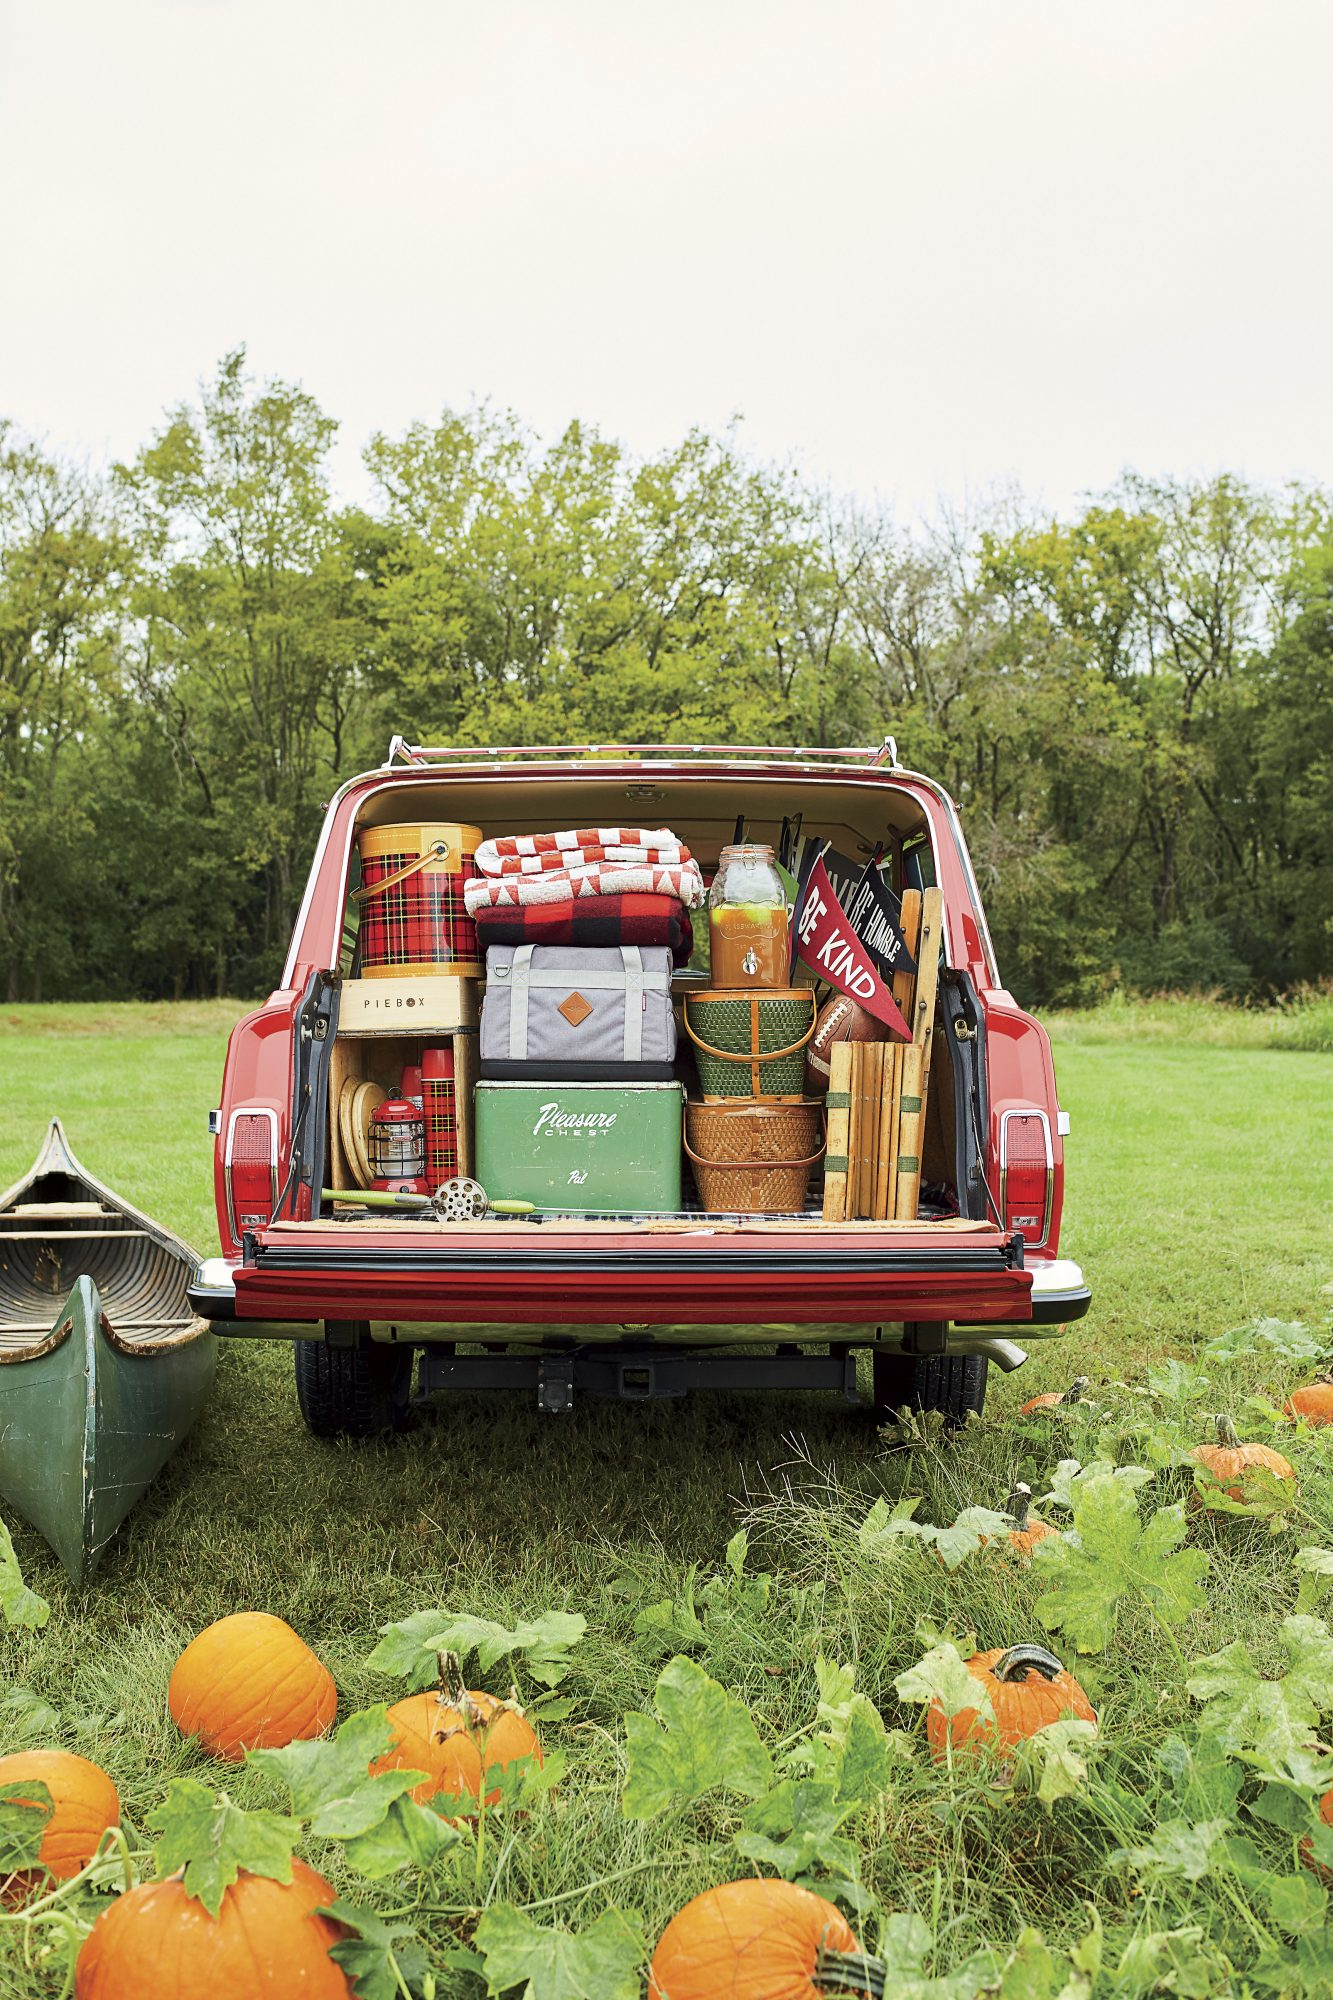 Katie Jacobs Fall Tailgate at Pumpkin Patch Jeep Packed with Supplies